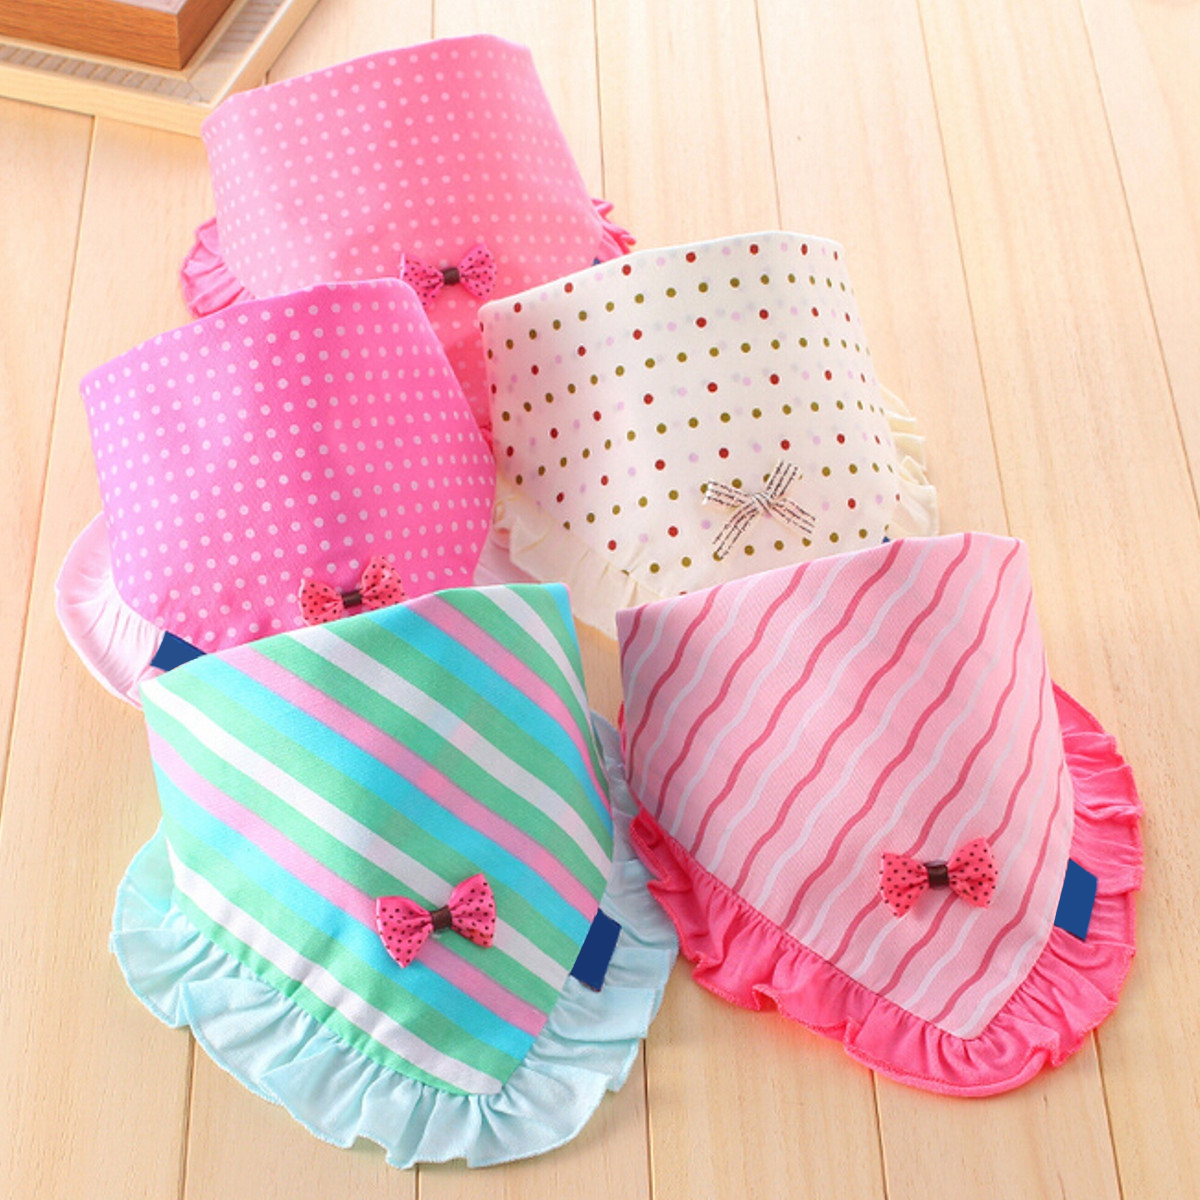 High Quality Baby Girls Bibs Toddler Bandana Triangle Head Scarf Cute Saliva Towel Cotton For Baby Bandana Bibs Multicolor(China (Mainland))